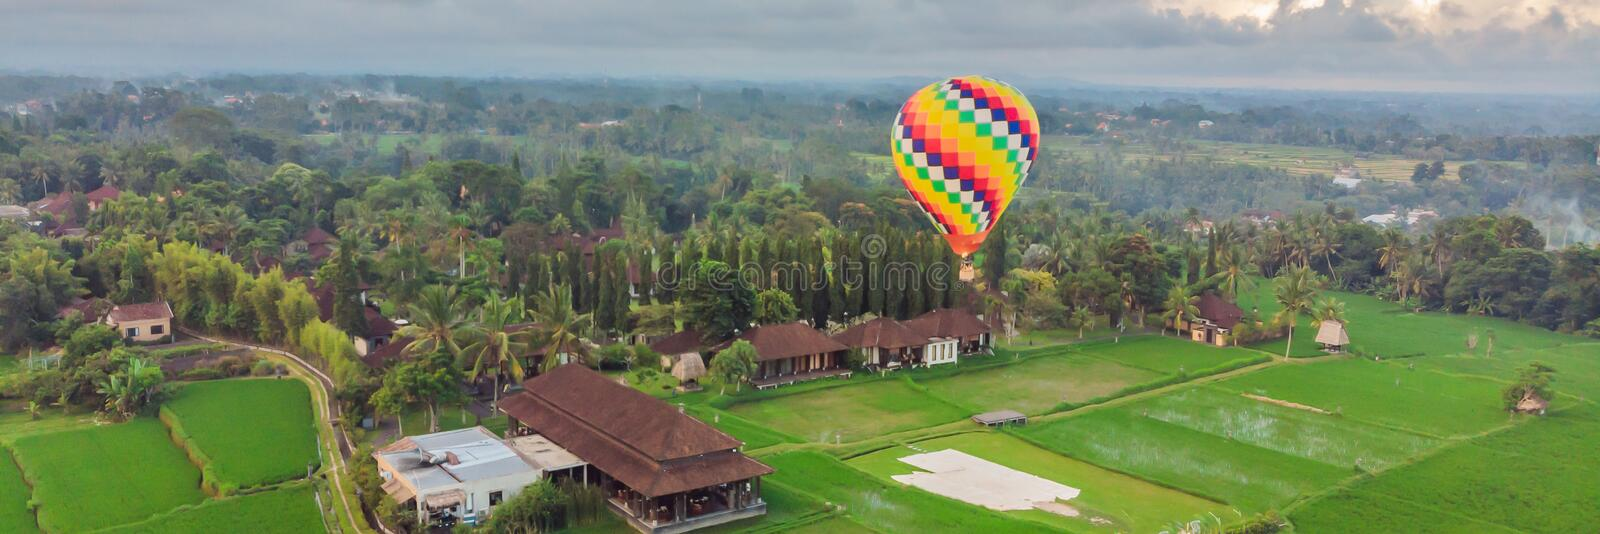 Hot air balloon over the green paddy field. Composition of nature and blue sky background. Travel concept BANNER, LONG stock image